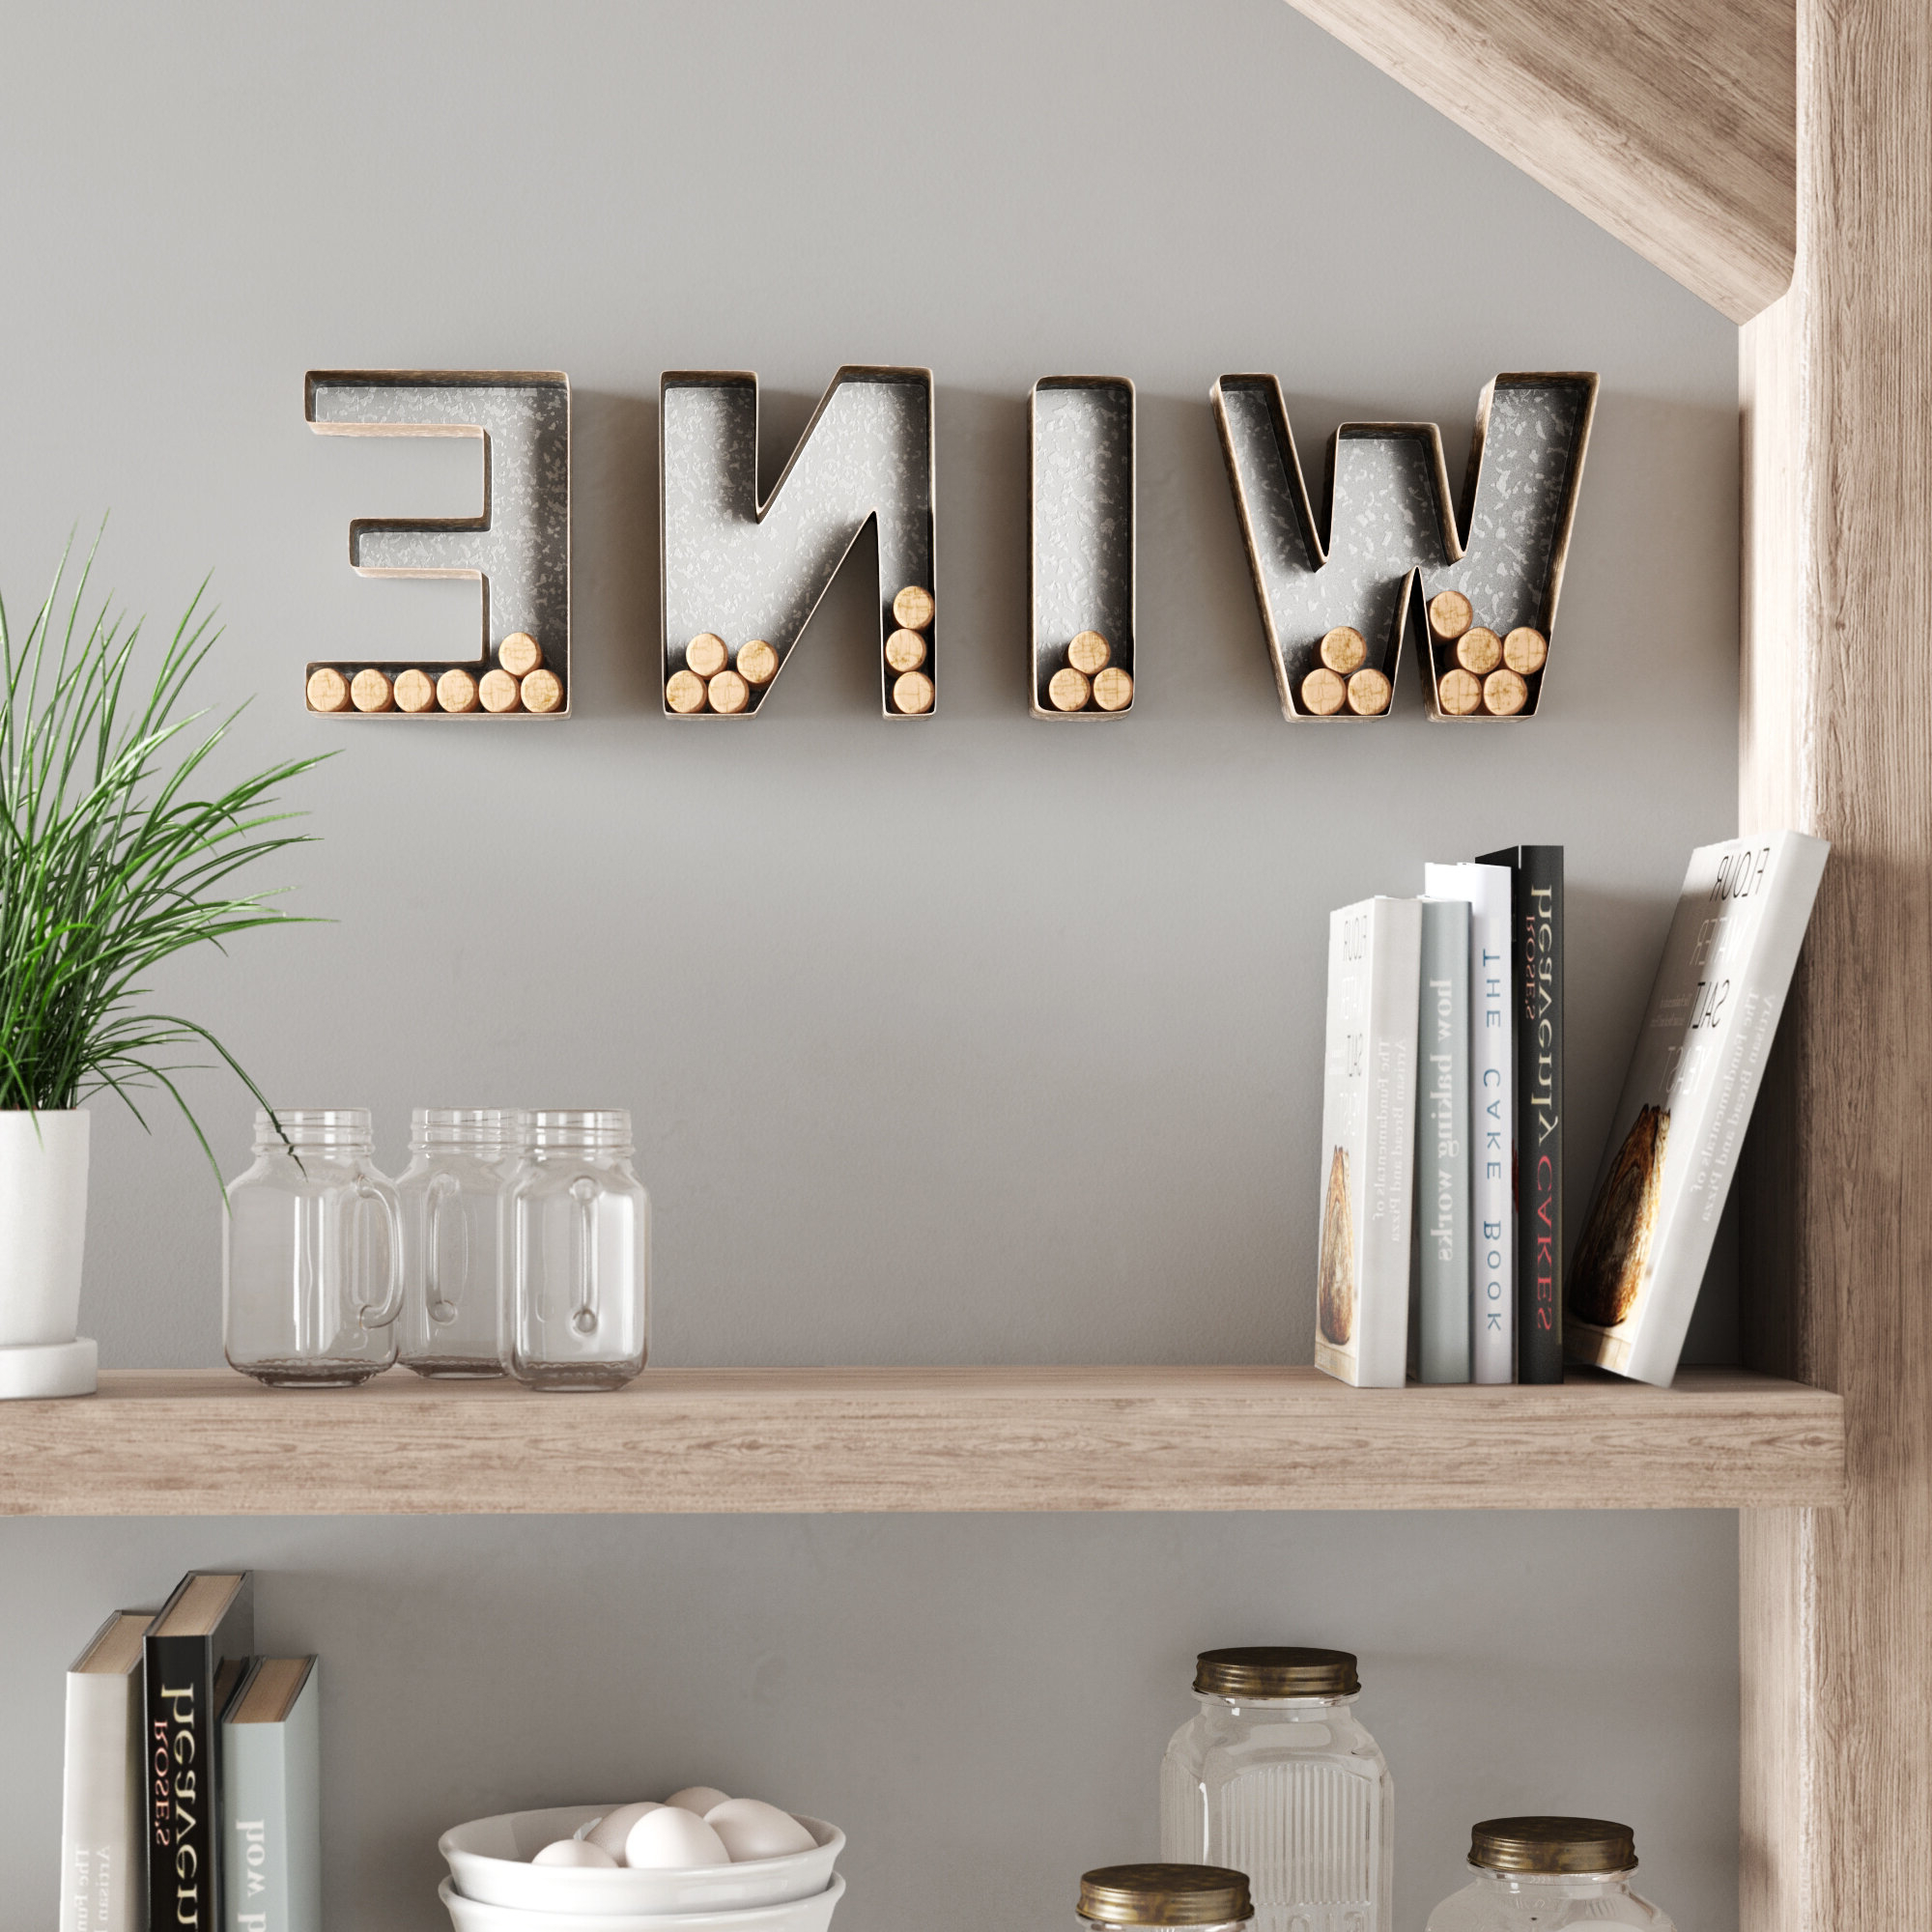 "4 Piece ""wine"" Letter Set Cork Holder Wall Décor Set With Regard To Most Current 4 Piece ""wine"" Letter Set Cork Holder Wall Décor Set (View 1 of 20)"